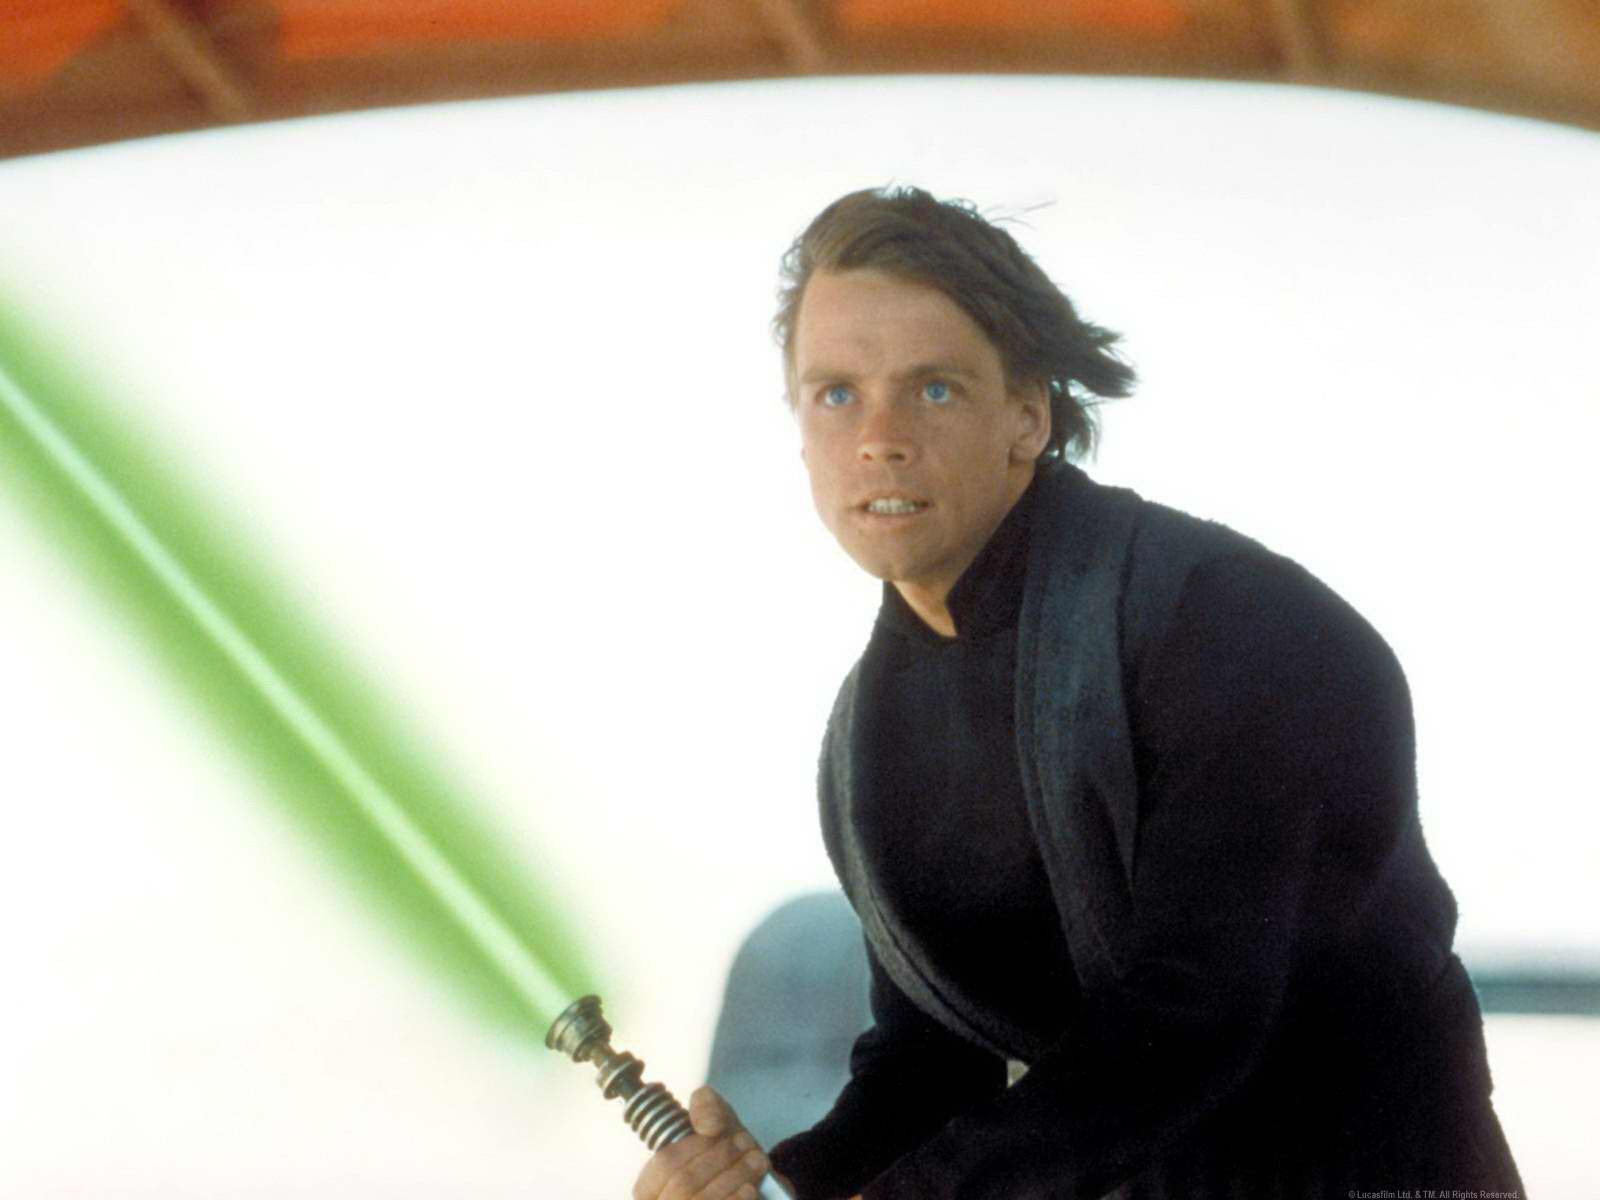 Luke Skywalker Wallpaper 6 Small Screen